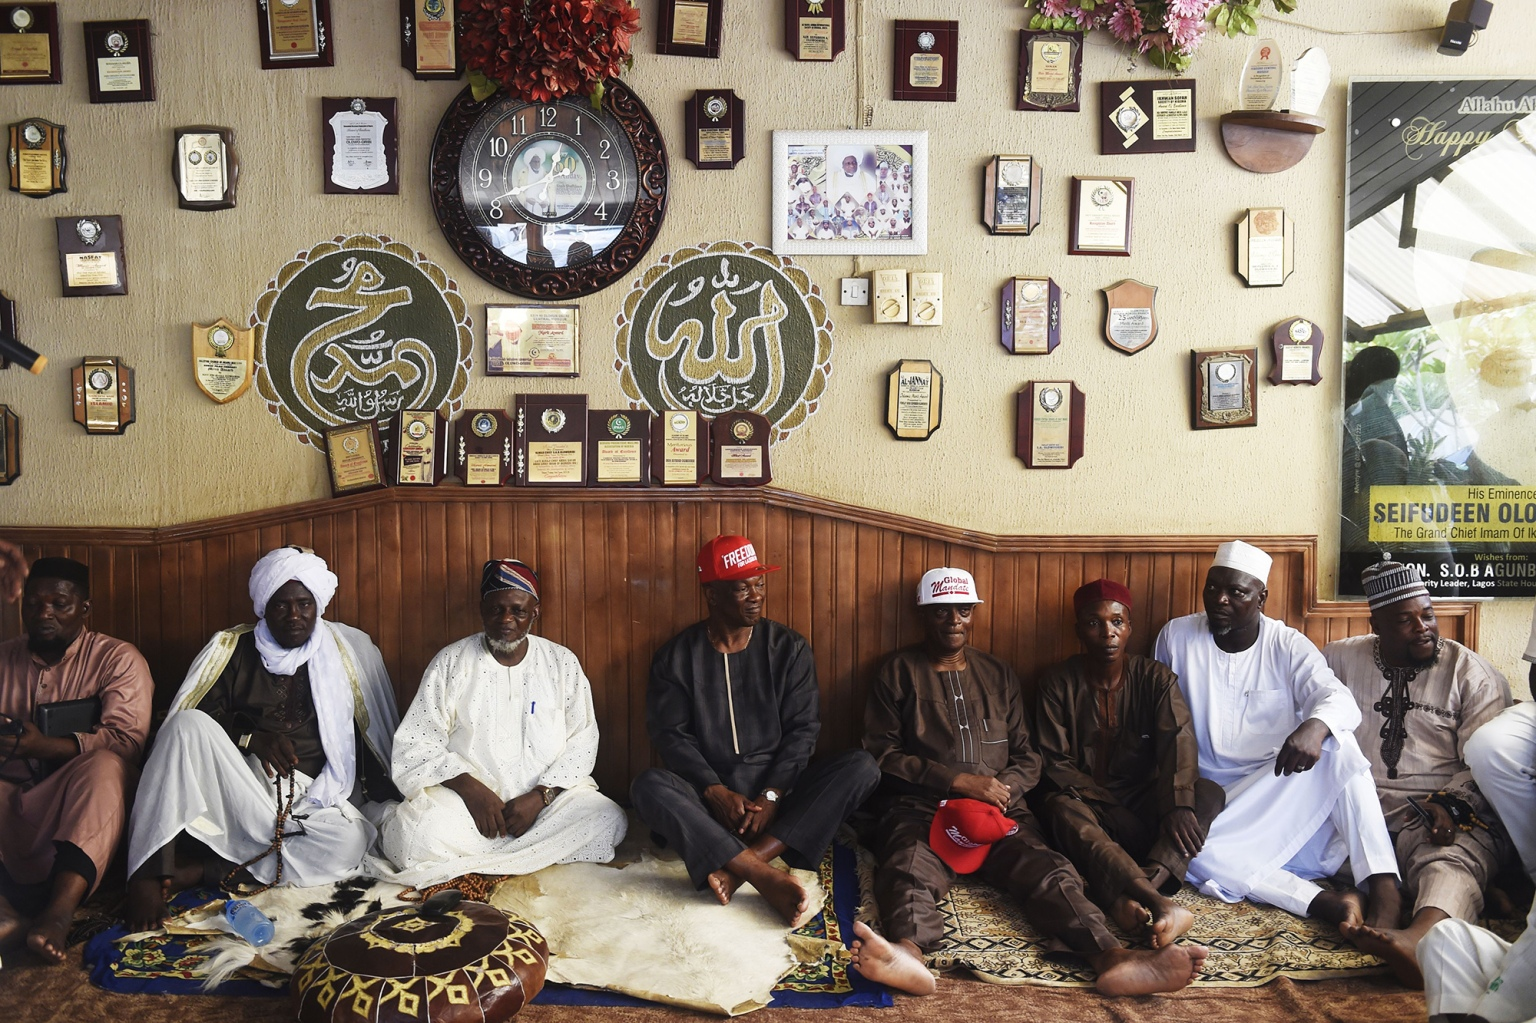 Nigerian opposition Peoples Democratic Party gubernatorial candidate Jimi Agbaje (center) sits on the floor during a meeting with Islamic leaders in the Ikorodu district of Lagos on Feb. 5. (Pius Utomi Ekpei/AFP/Getty Images)